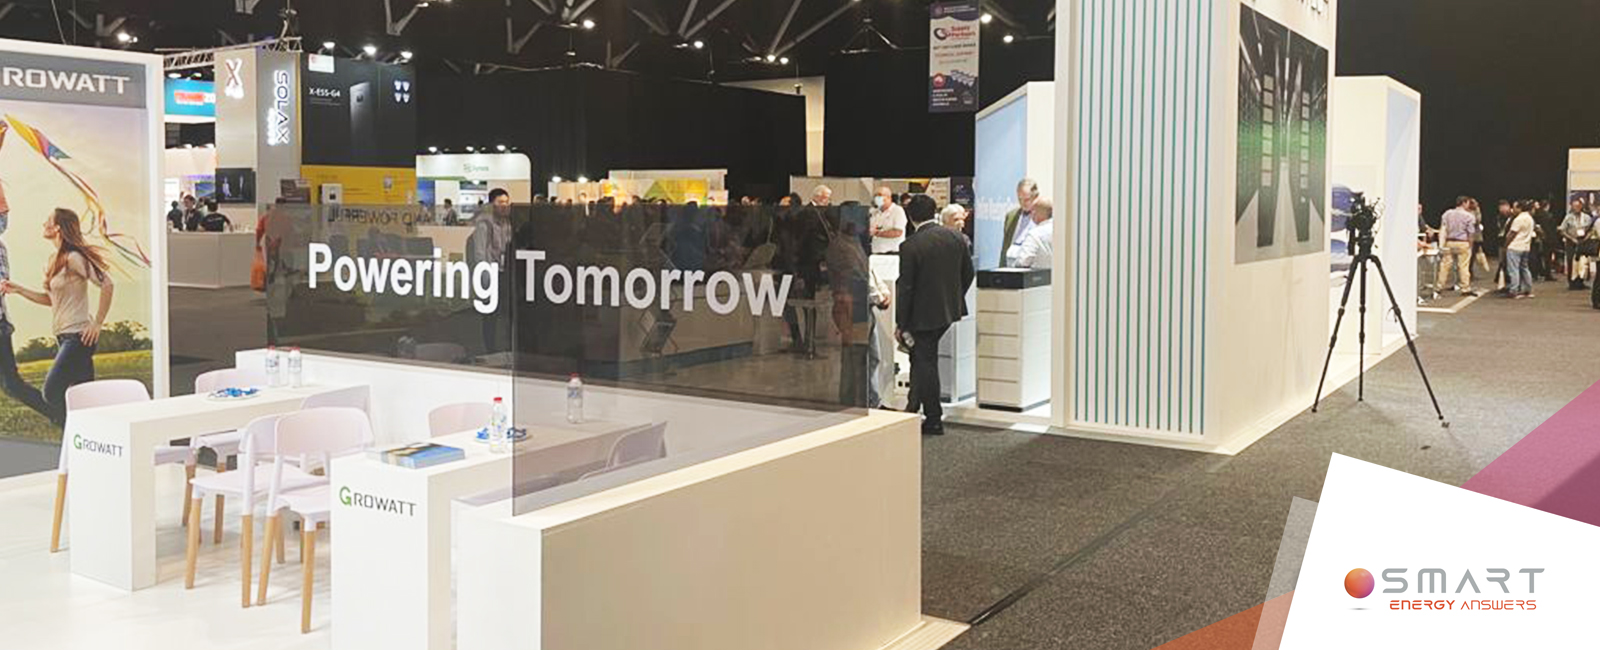 Smart Energy Conference & Exhibition 2021 - featured image